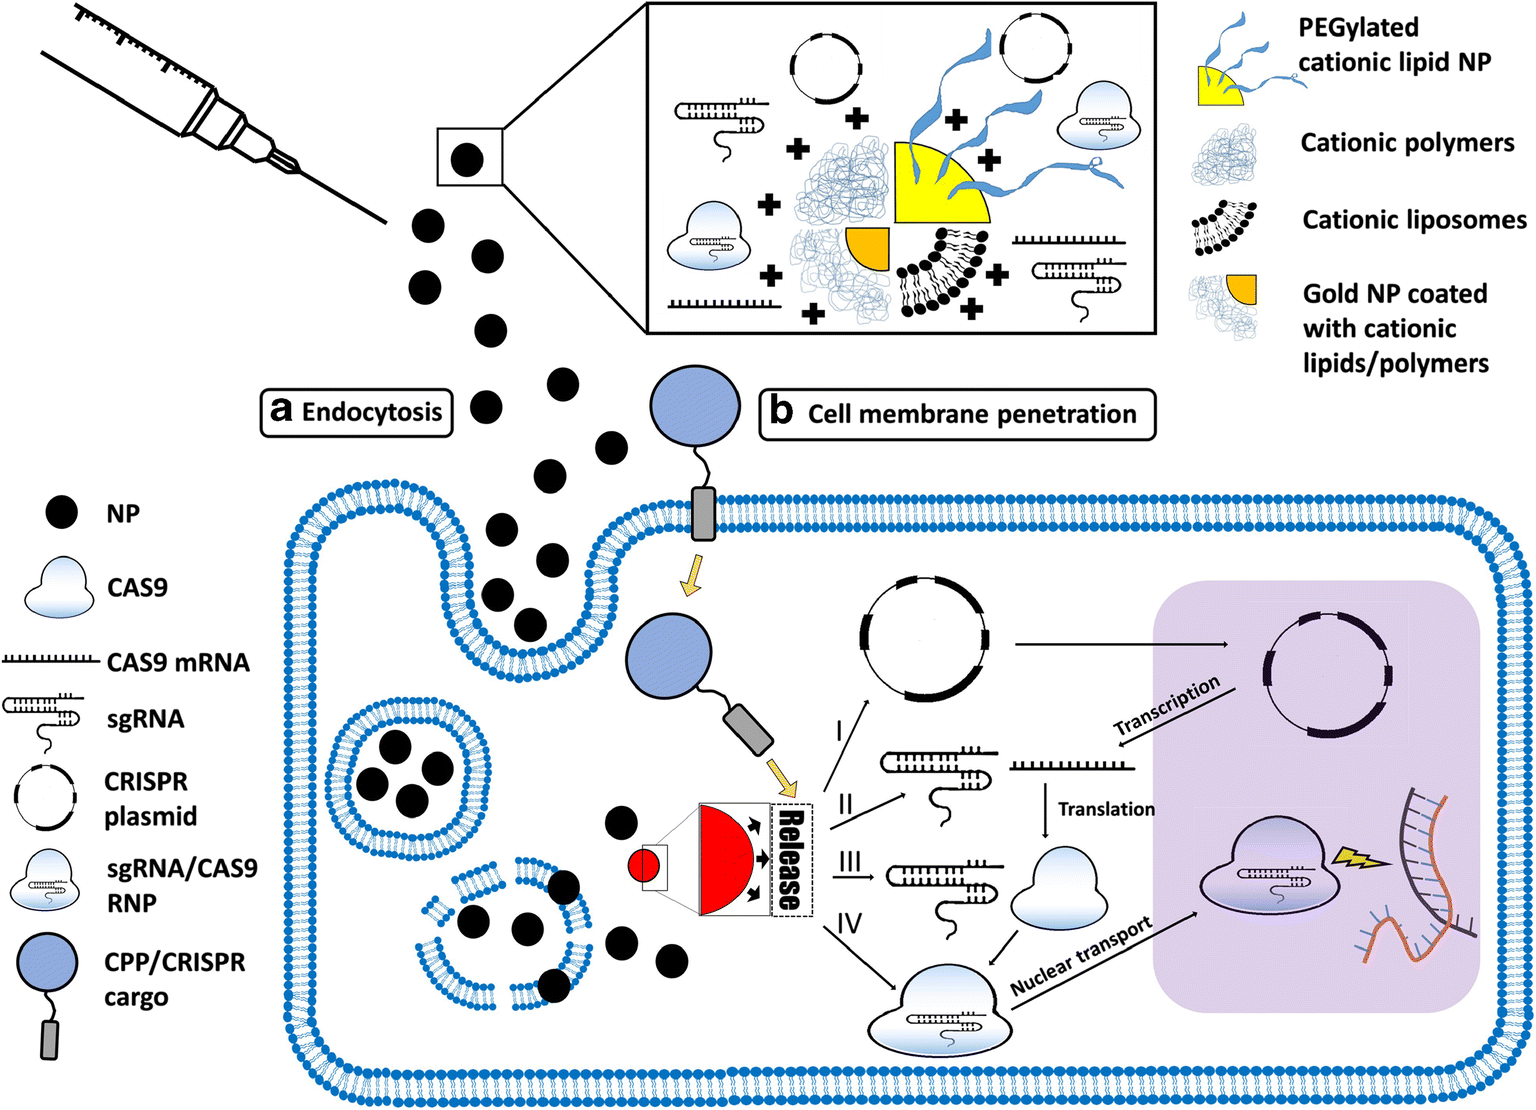 Nanoparticle-Based Delivery of CRISPR/Cas9 Genome-Editing